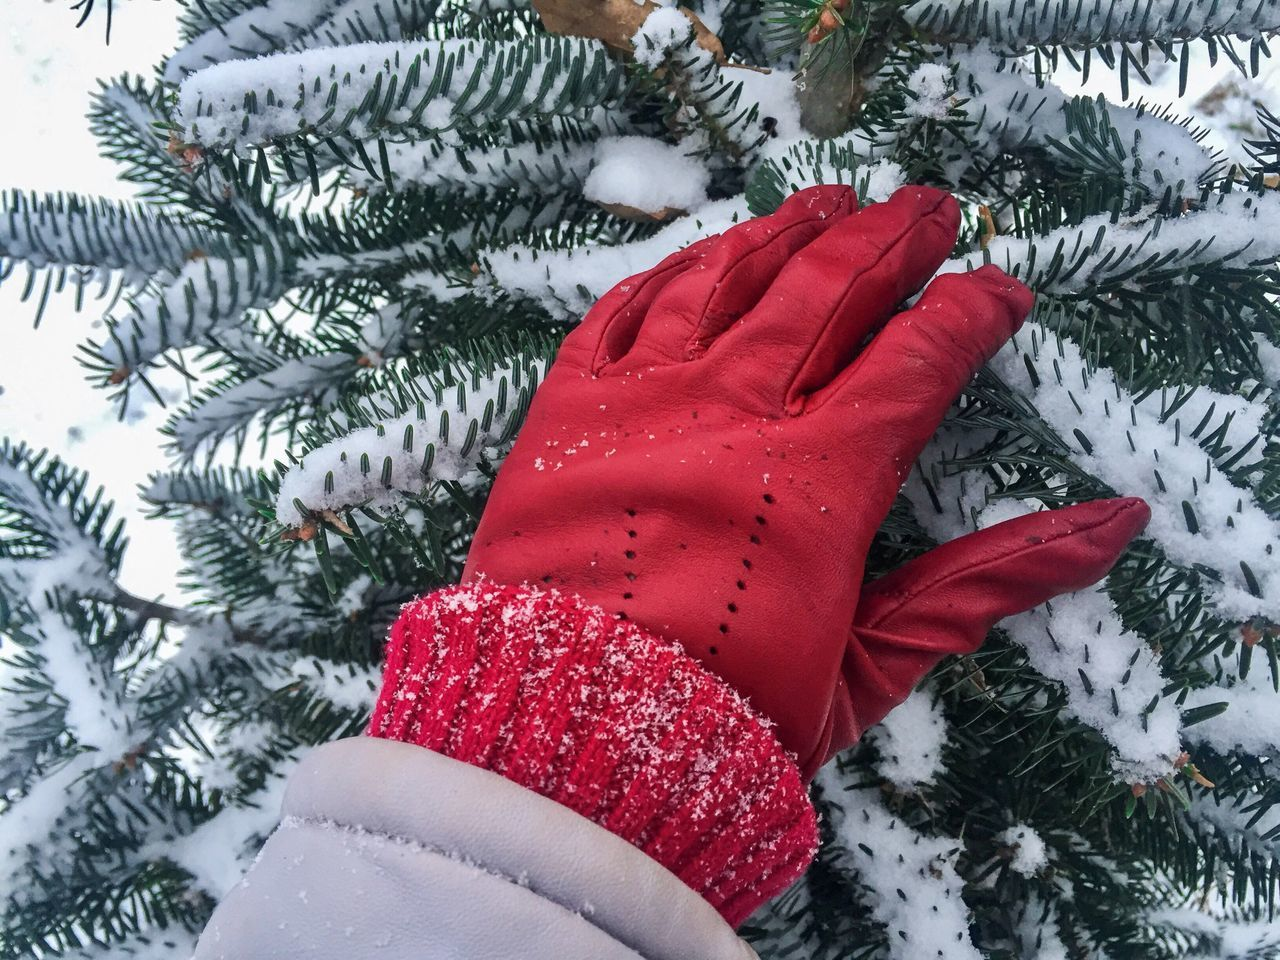 Woman hand wearing red glove touching pine cone tree covered in snow Celebration Red Winter Tree One Person Tradition Snow Celebration Event Cold Temperature Close-up Holiday - Event Real People Human Body Part Outdoors Day Human Hand Jacket Glove Hand Snow Touch Evergreen Needles Woman